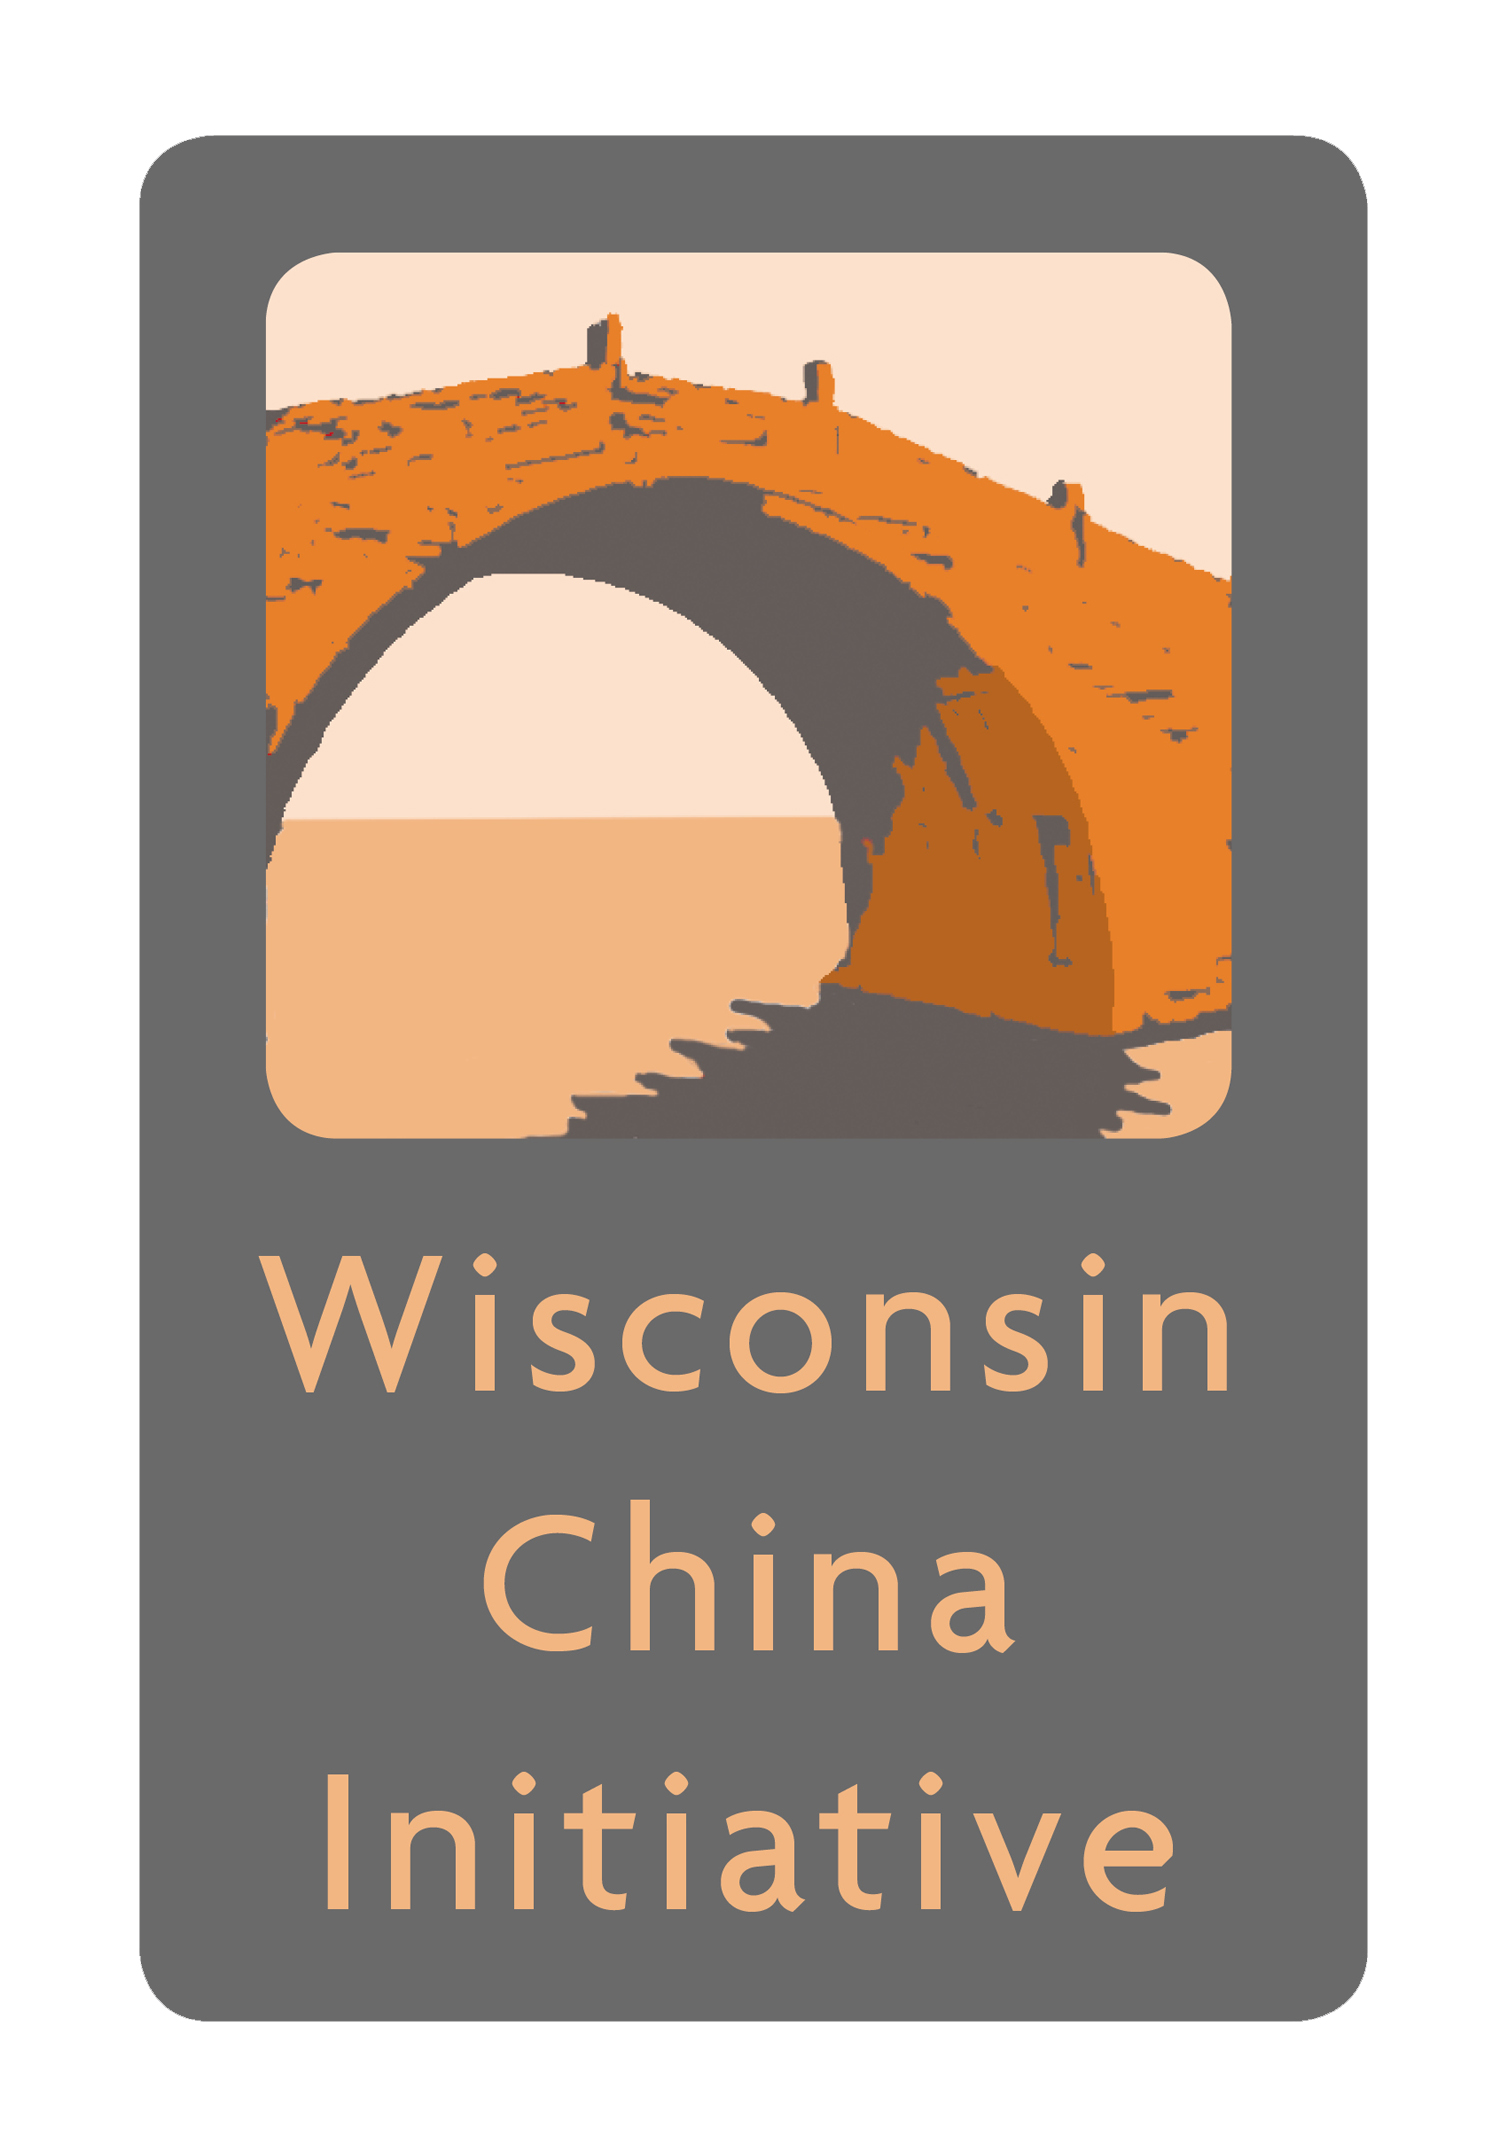 Wisconsin China Initiative logo